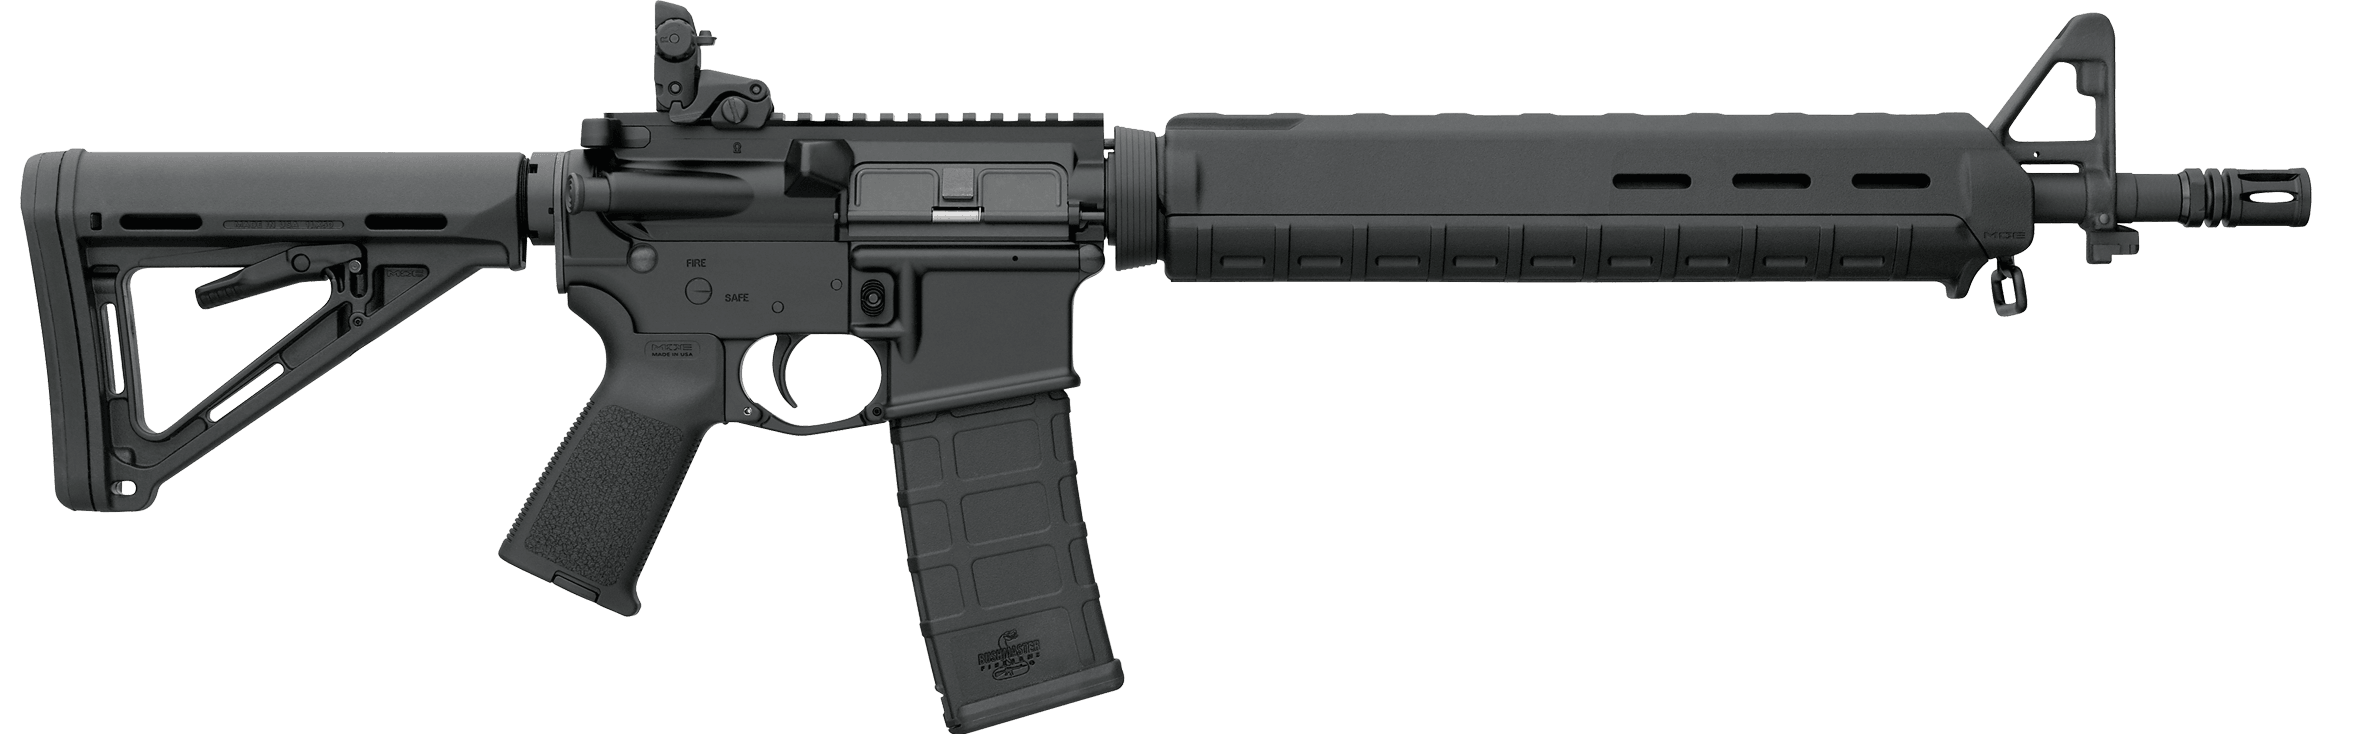 clipart freeuse library Vector carbine m4a1. Firearms bushmaster msrp starting